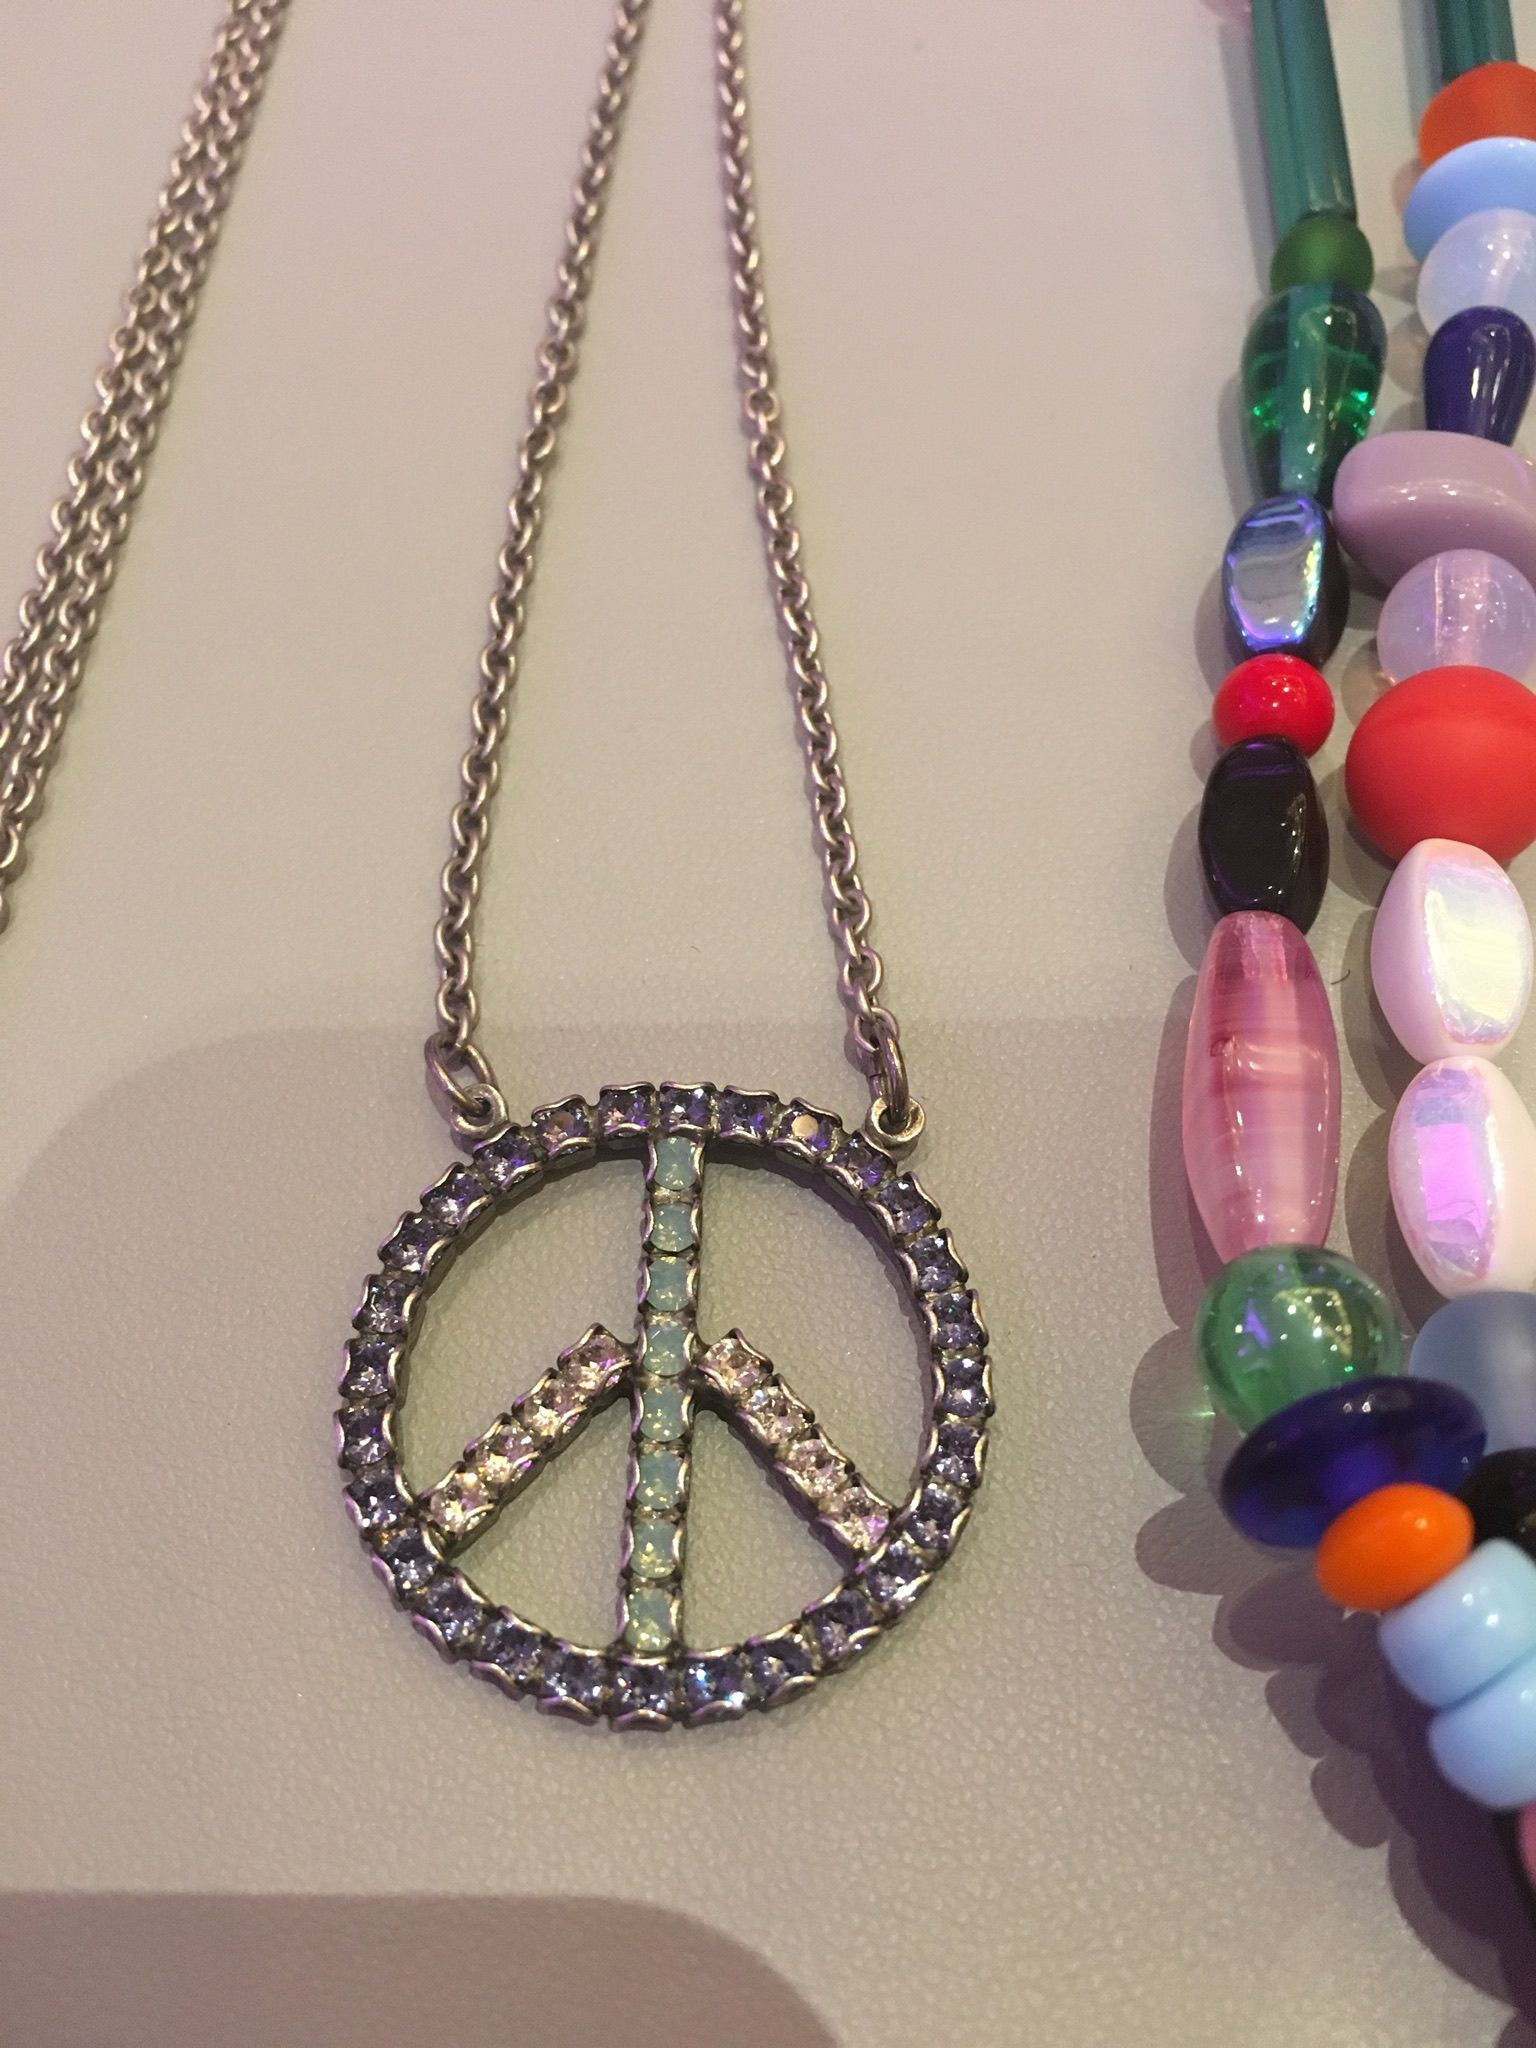 Sabika look necklace - A Funky Fresh Take On The Iconic Peace Sign By Sabika Find This And